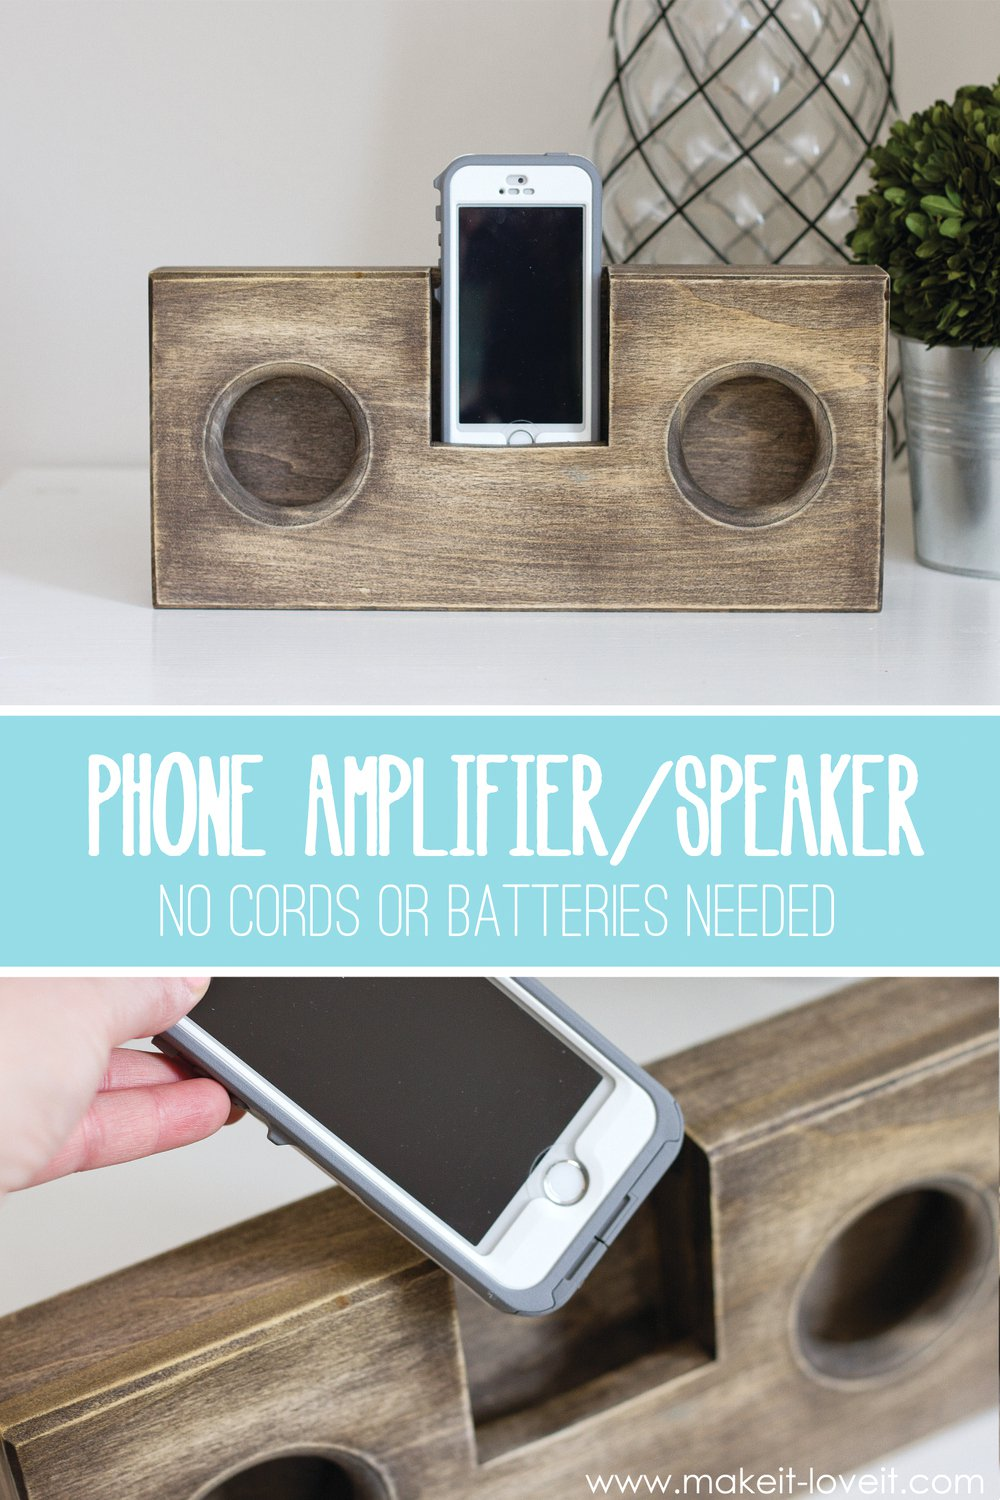 Wooden-Phone-AmplifierSpeaker-no-cord-or-batteries-needed-7